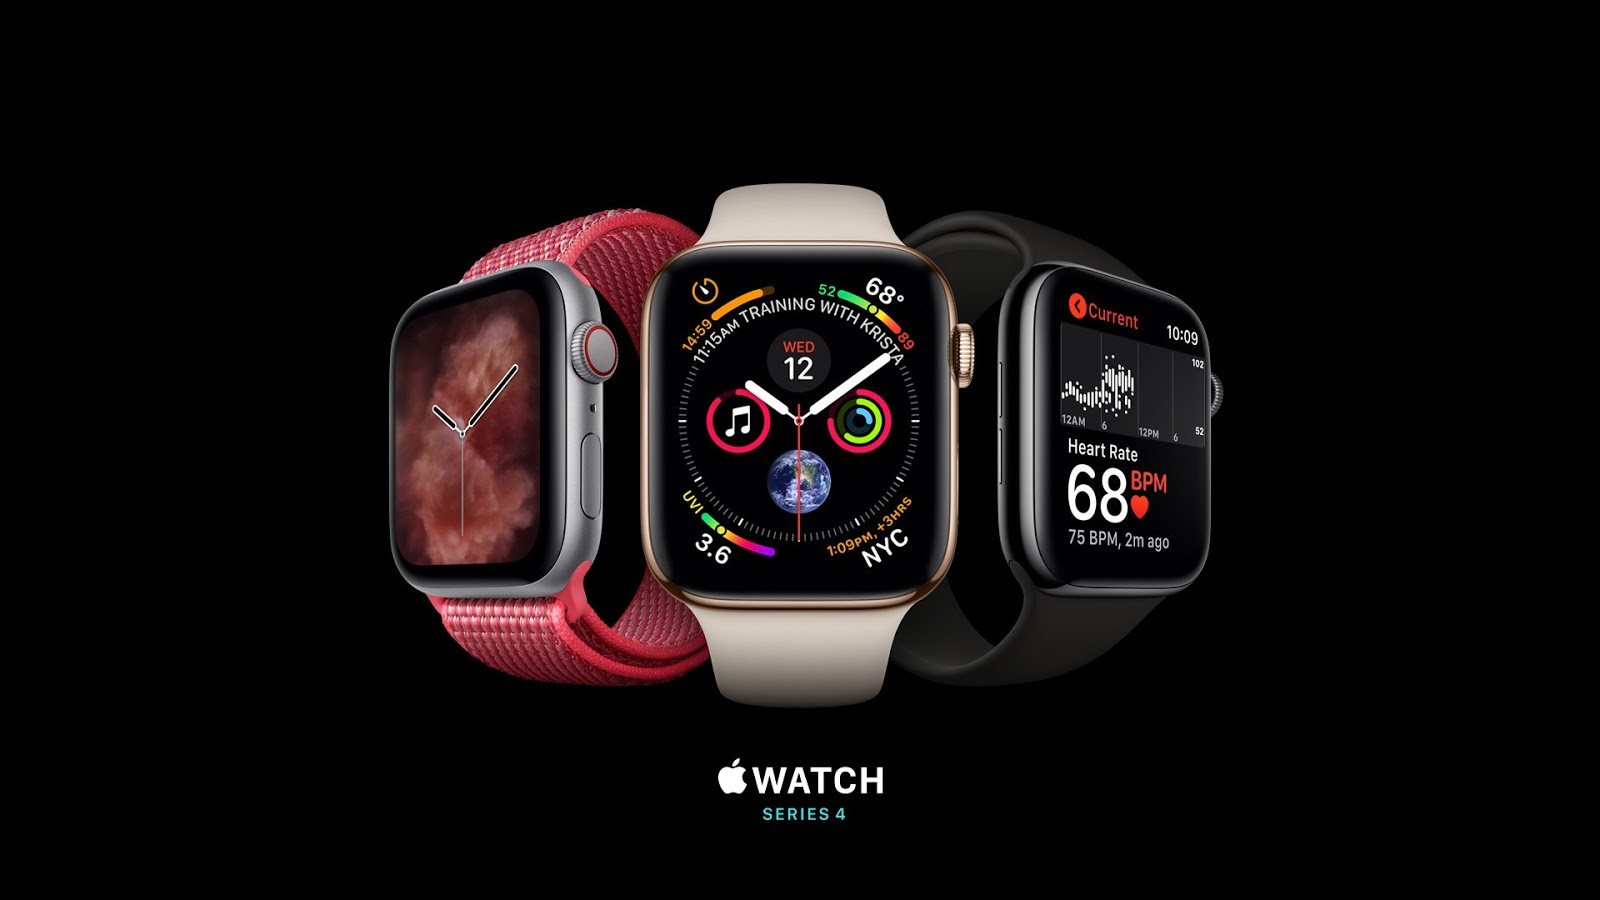 Wallpapers Apple Watch Series 4, silver, gold, black HD image